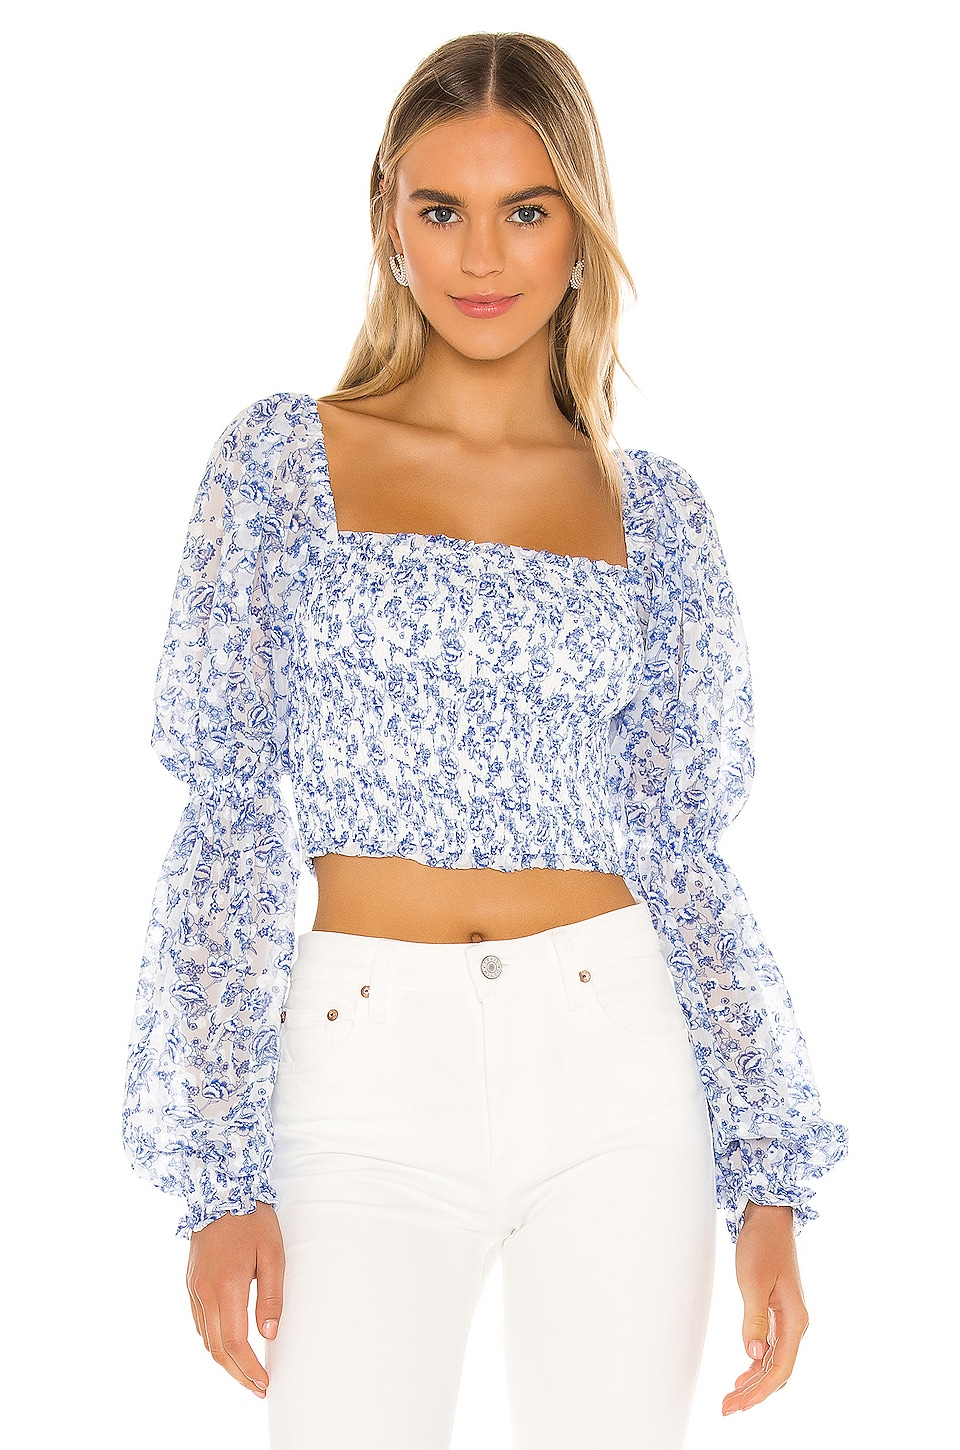 Tularosa Trinity Smocked Top in Country Blue Toile